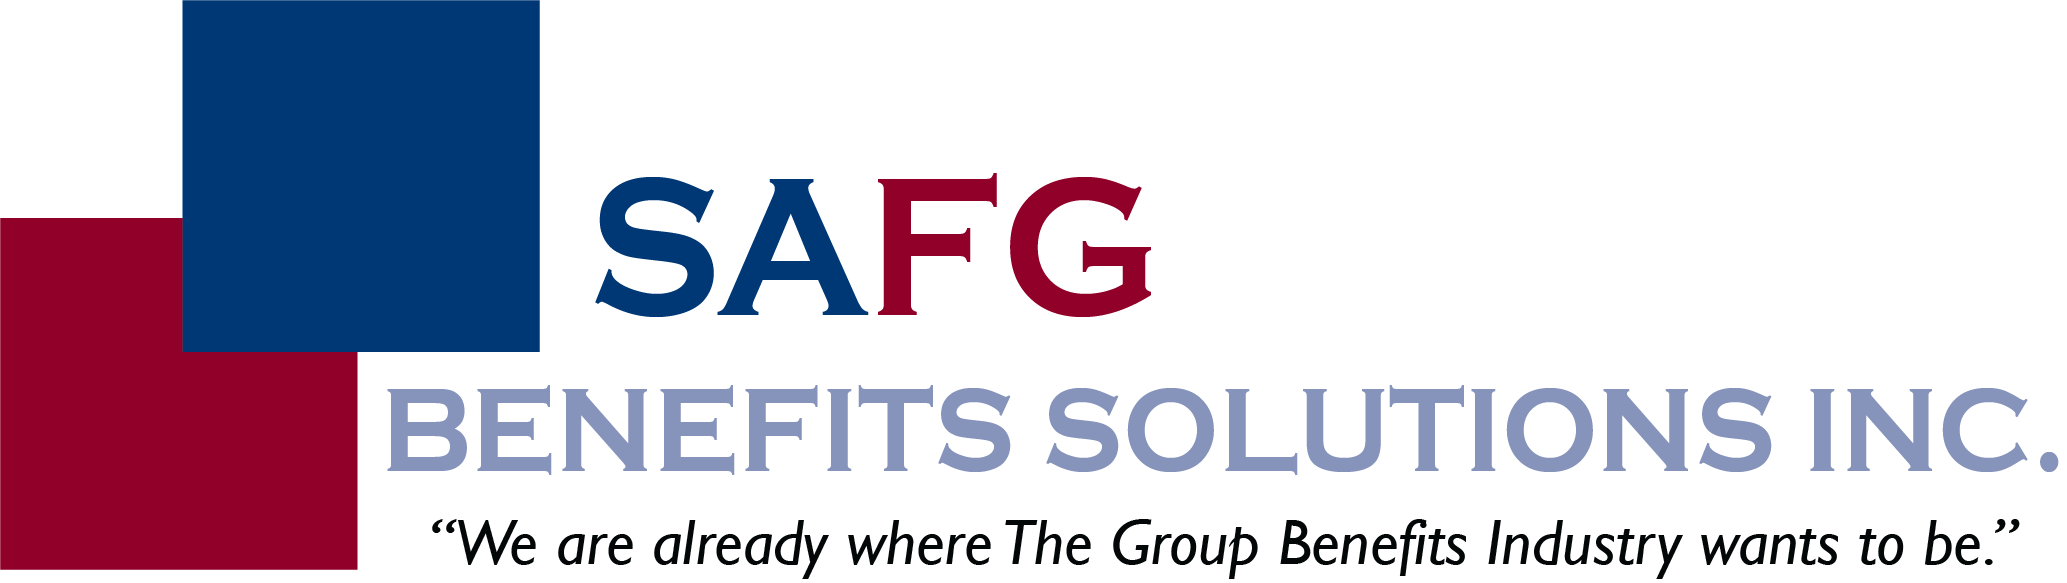 SAFG Solutions